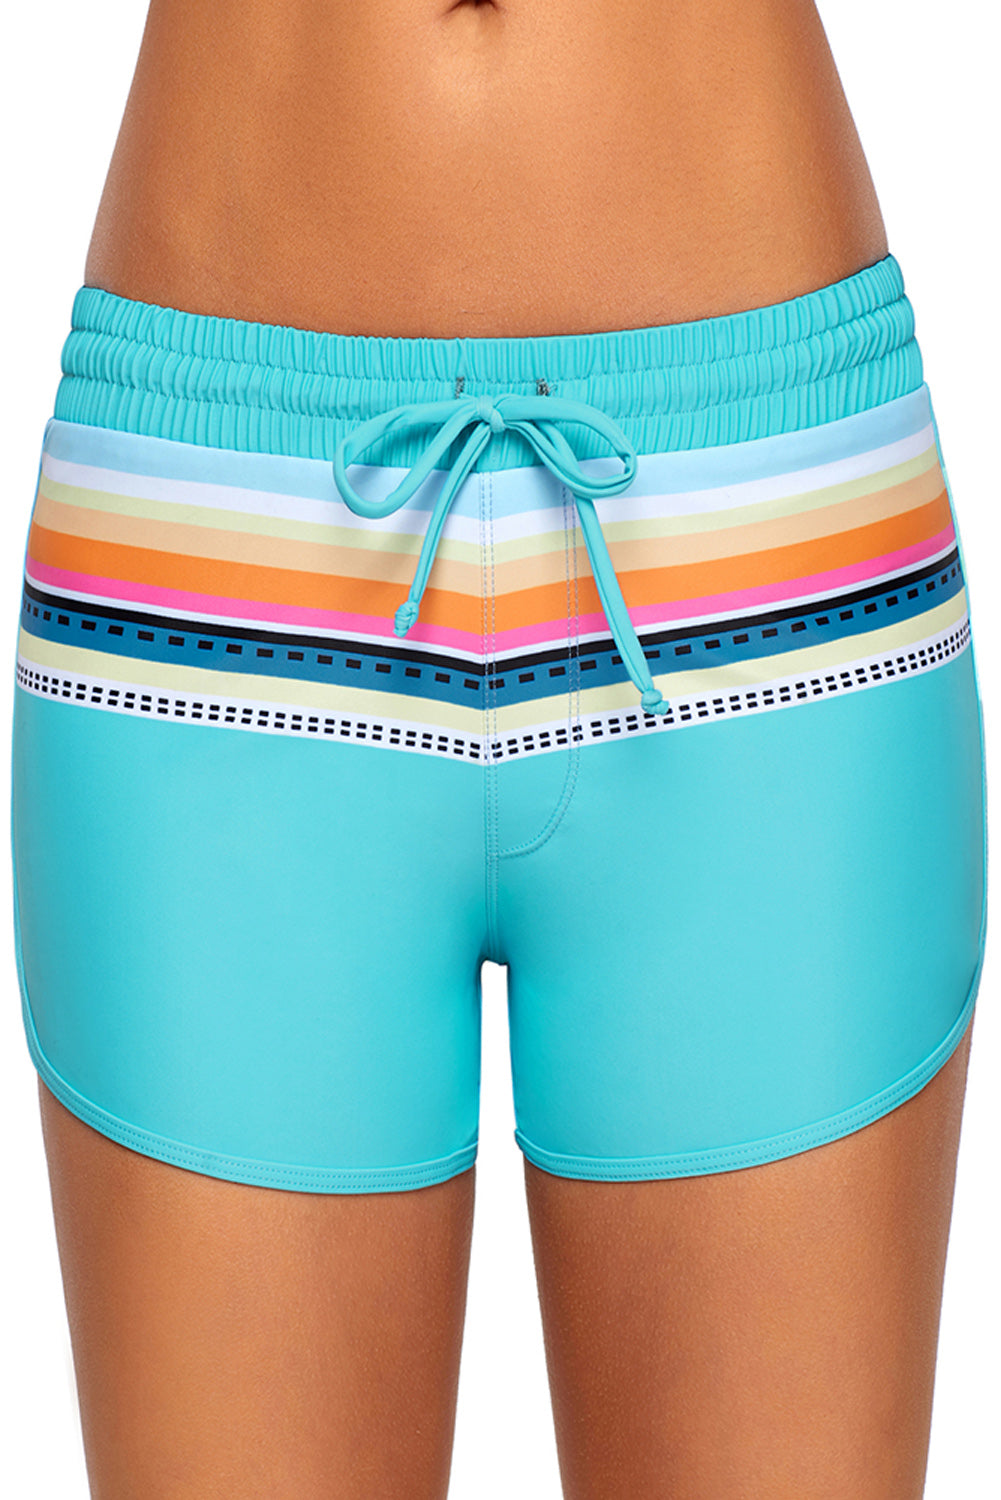 Striped Print Accent Light Blue Drawstring Board Shorts